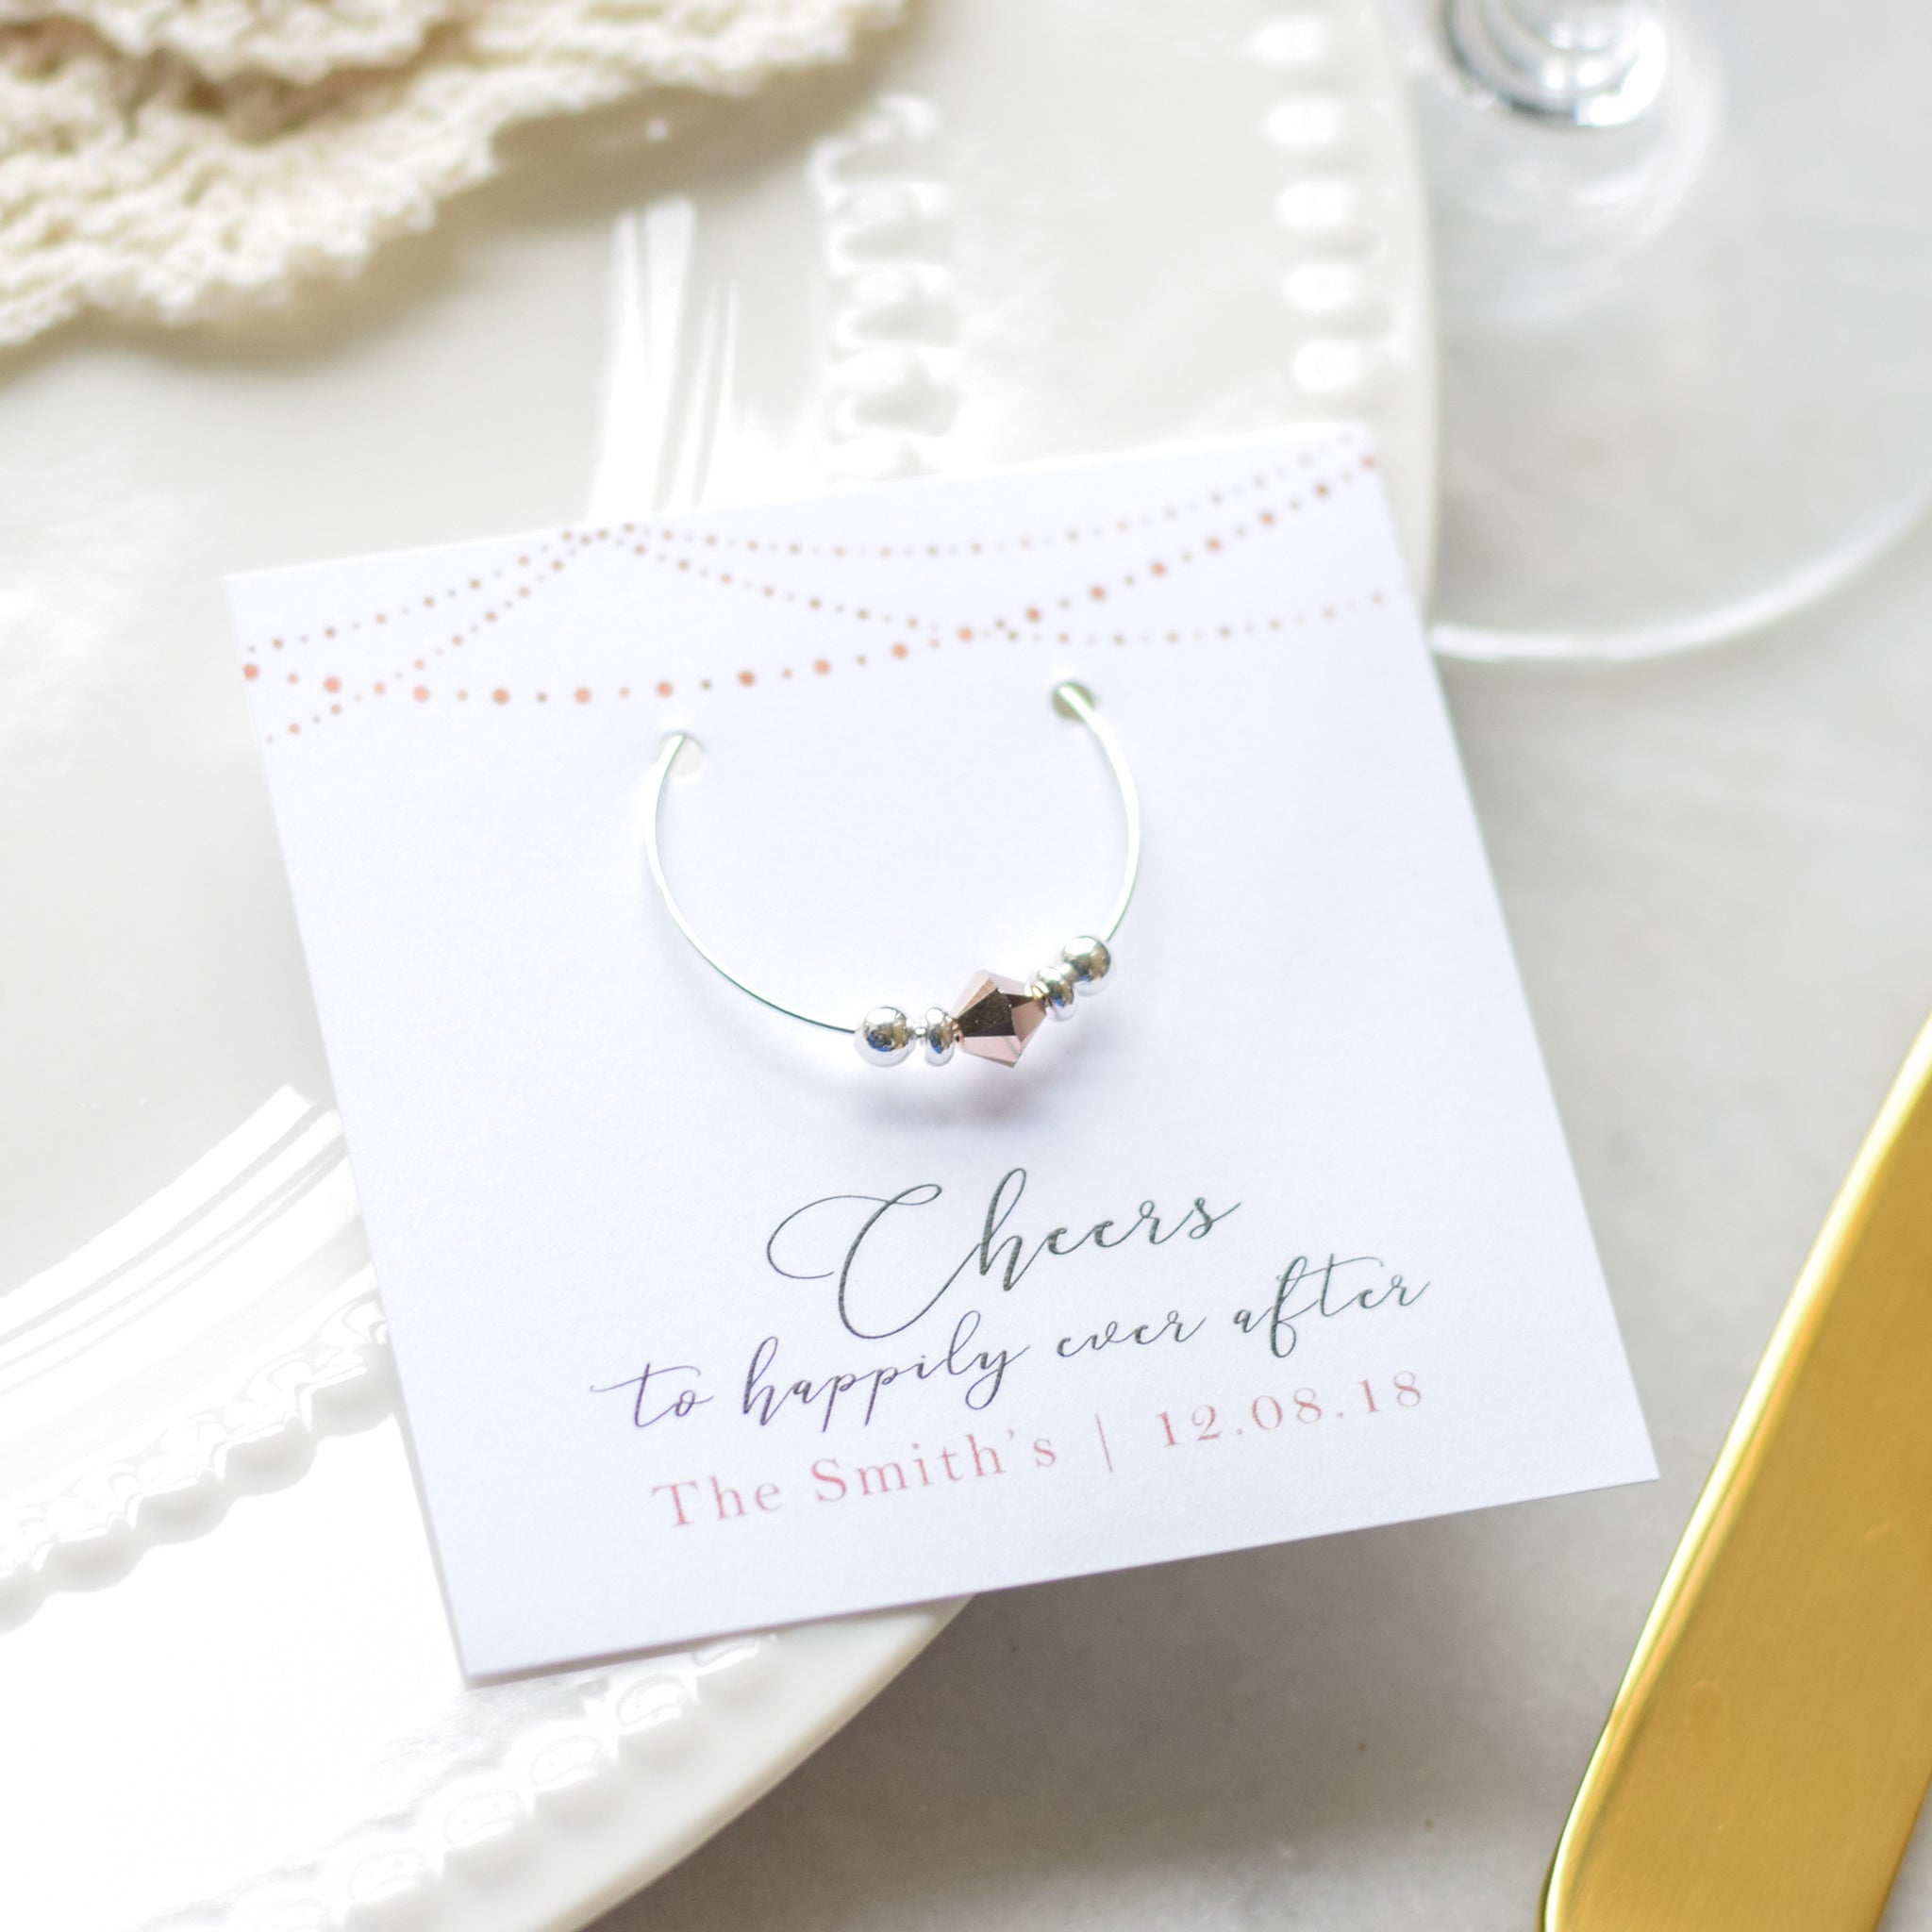 Wedding Gift Favors in Rose Gold - Stemware Charms - @PlumPolkaDot